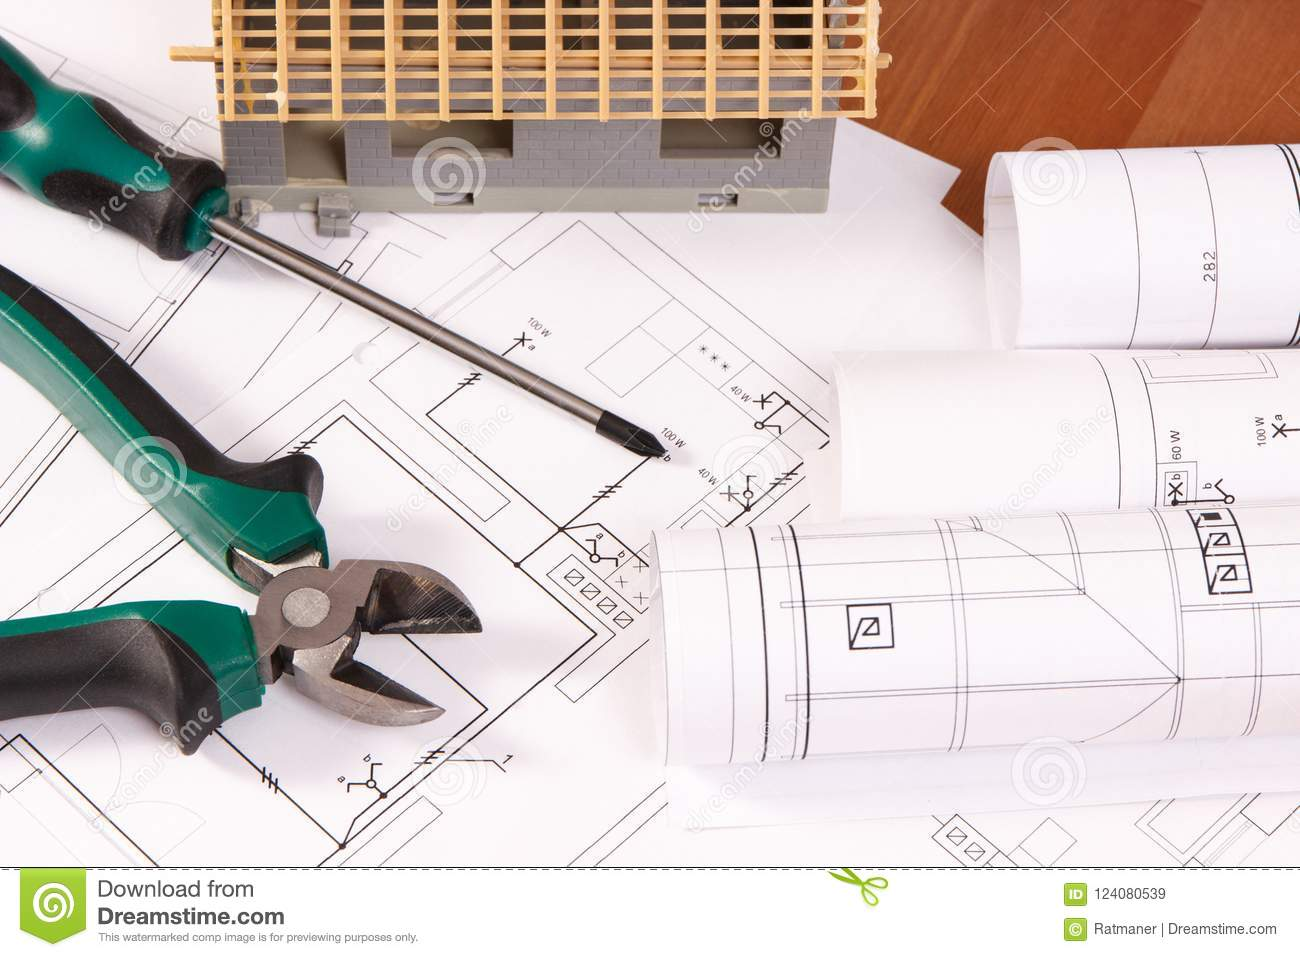 Electrical drawings work tools and house under construction lying electrical drawings or diagrams work tools and house under construction lying on desk building home concept ccuart Image collections